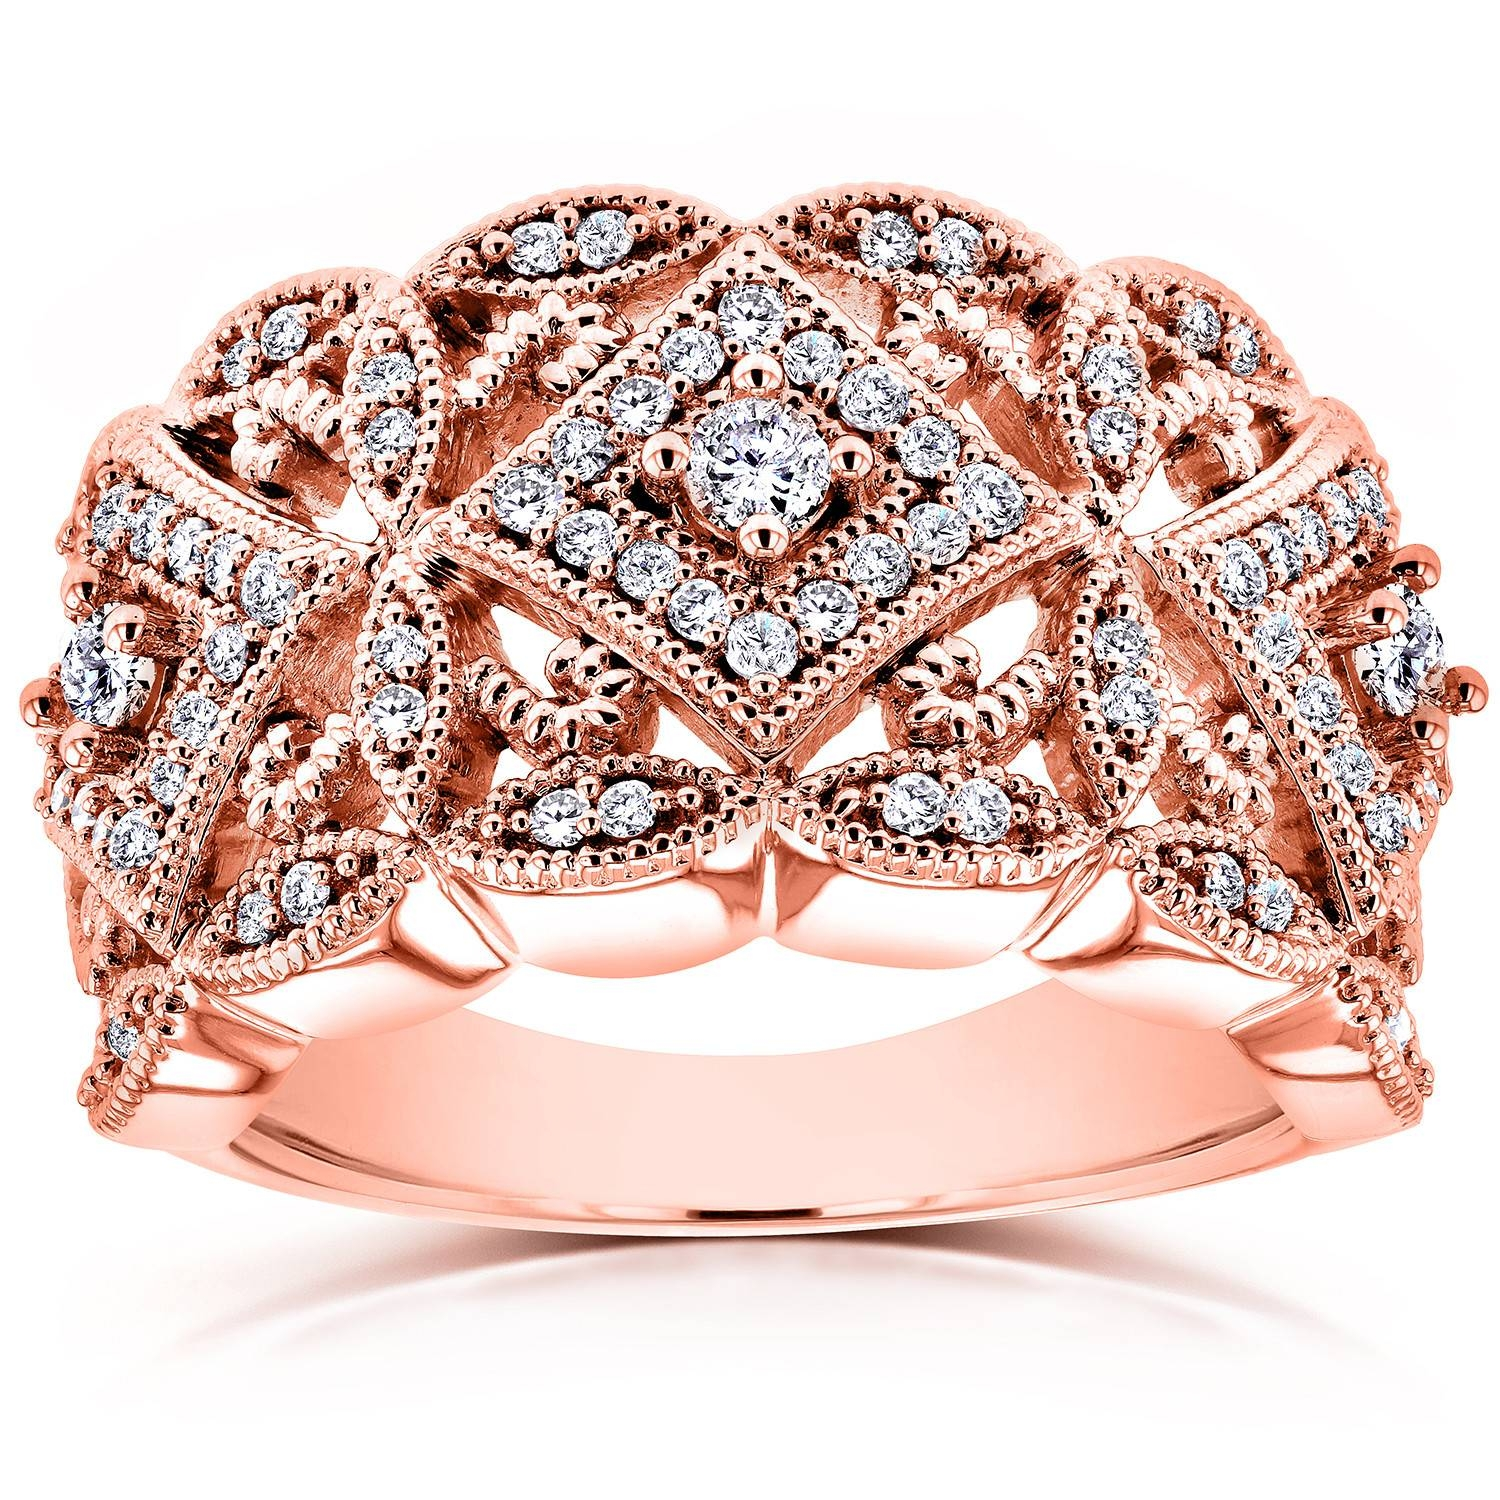 Diamond Antique Filigree Wide Anniversary Ring 1/2 Ctw In 14K Rose With Recent Gold Anniversary Rings (View 12 of 25)